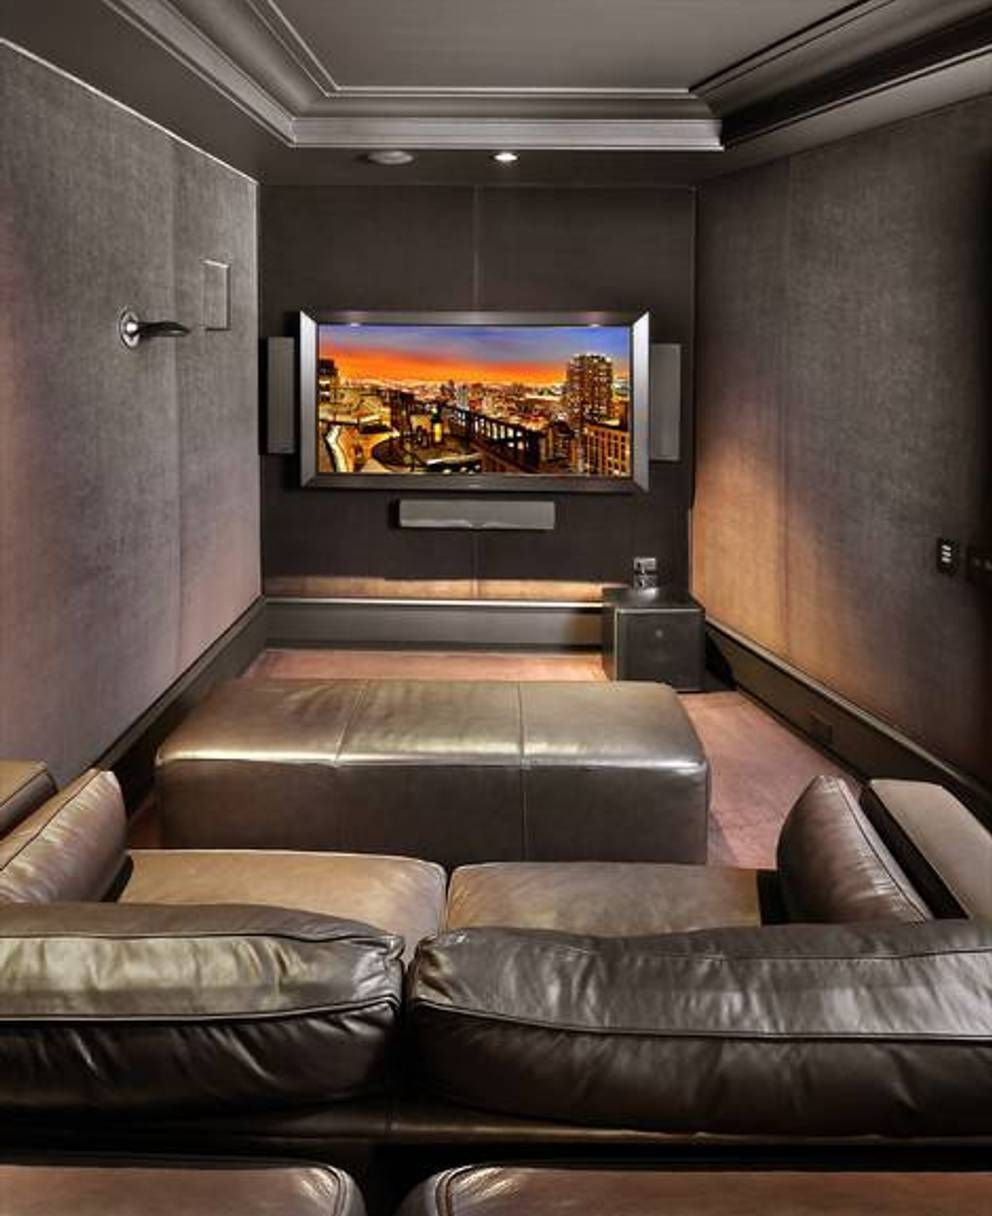 Elite home theater seating cuddle couch - Home Design And Decor Small Home Theater Room Ideas Modern Small Home Theater Room